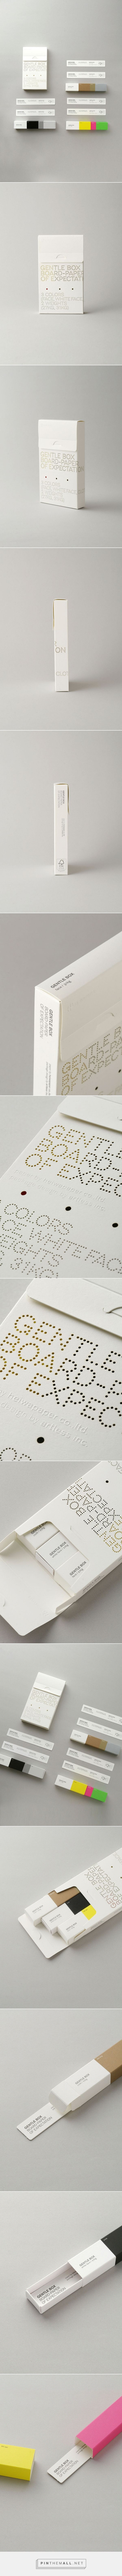 artless Inc.   gentle box: board-paper of expectation